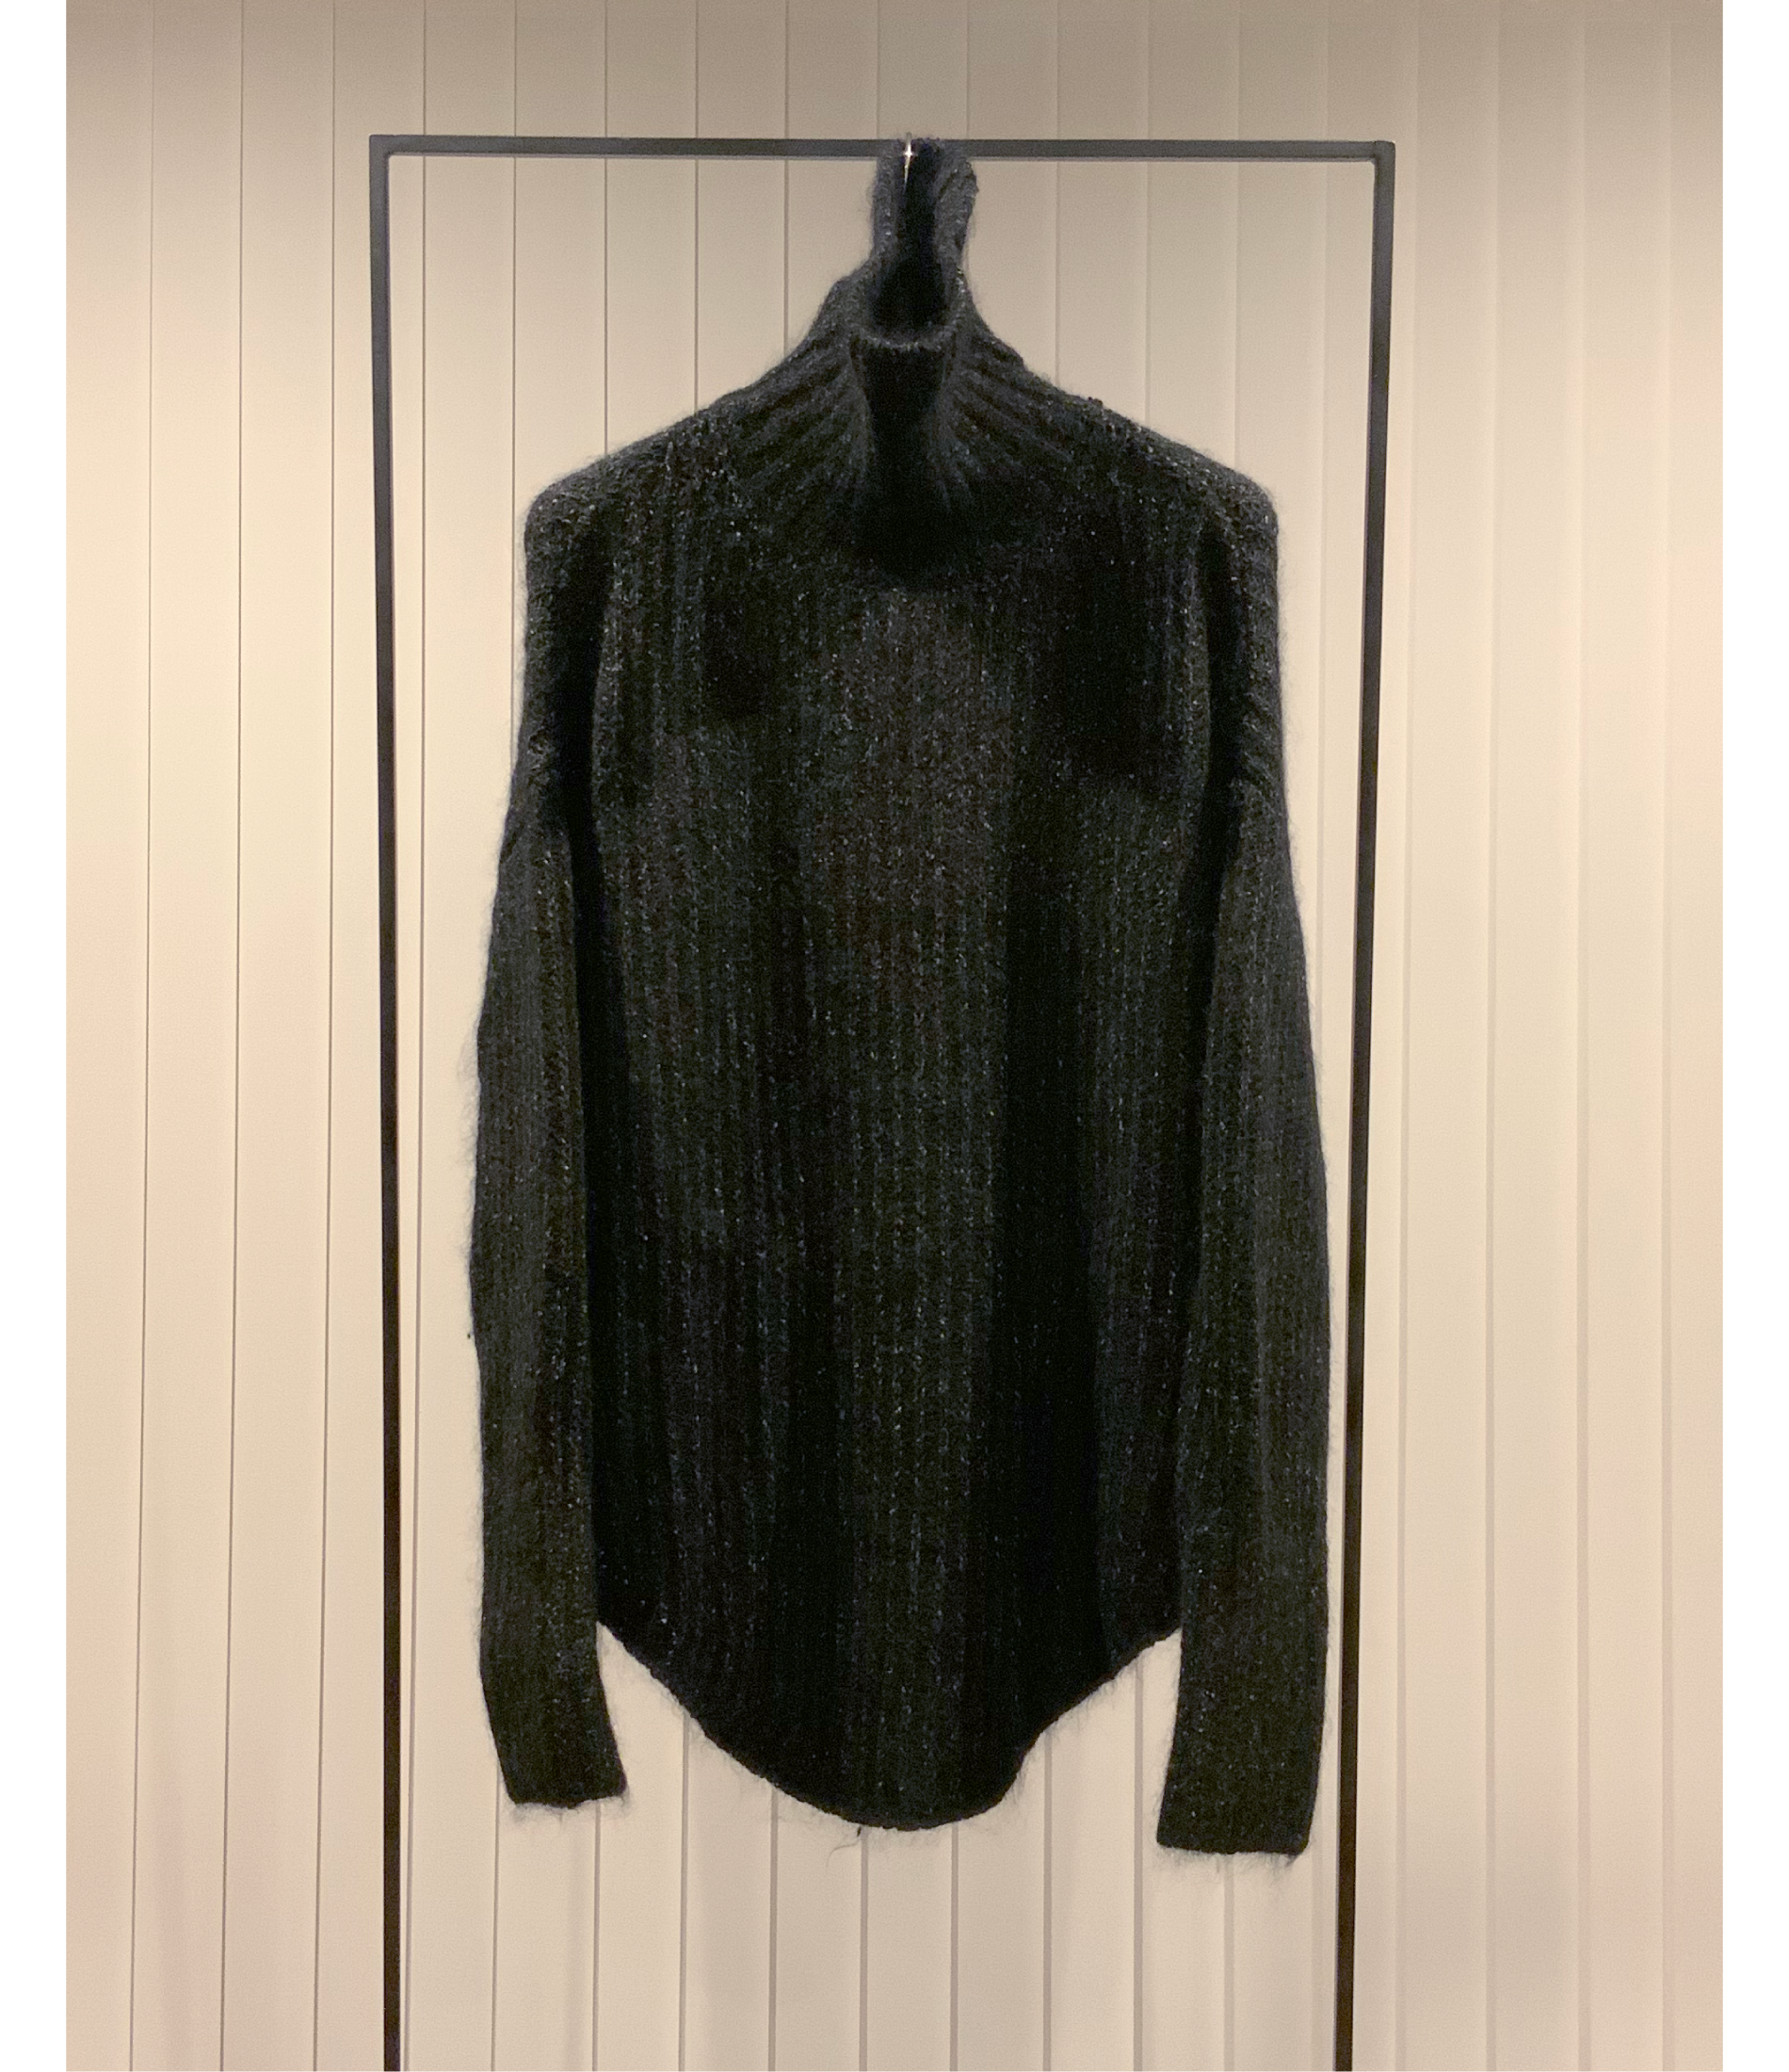 2-Toned High-neck Sweater / Black